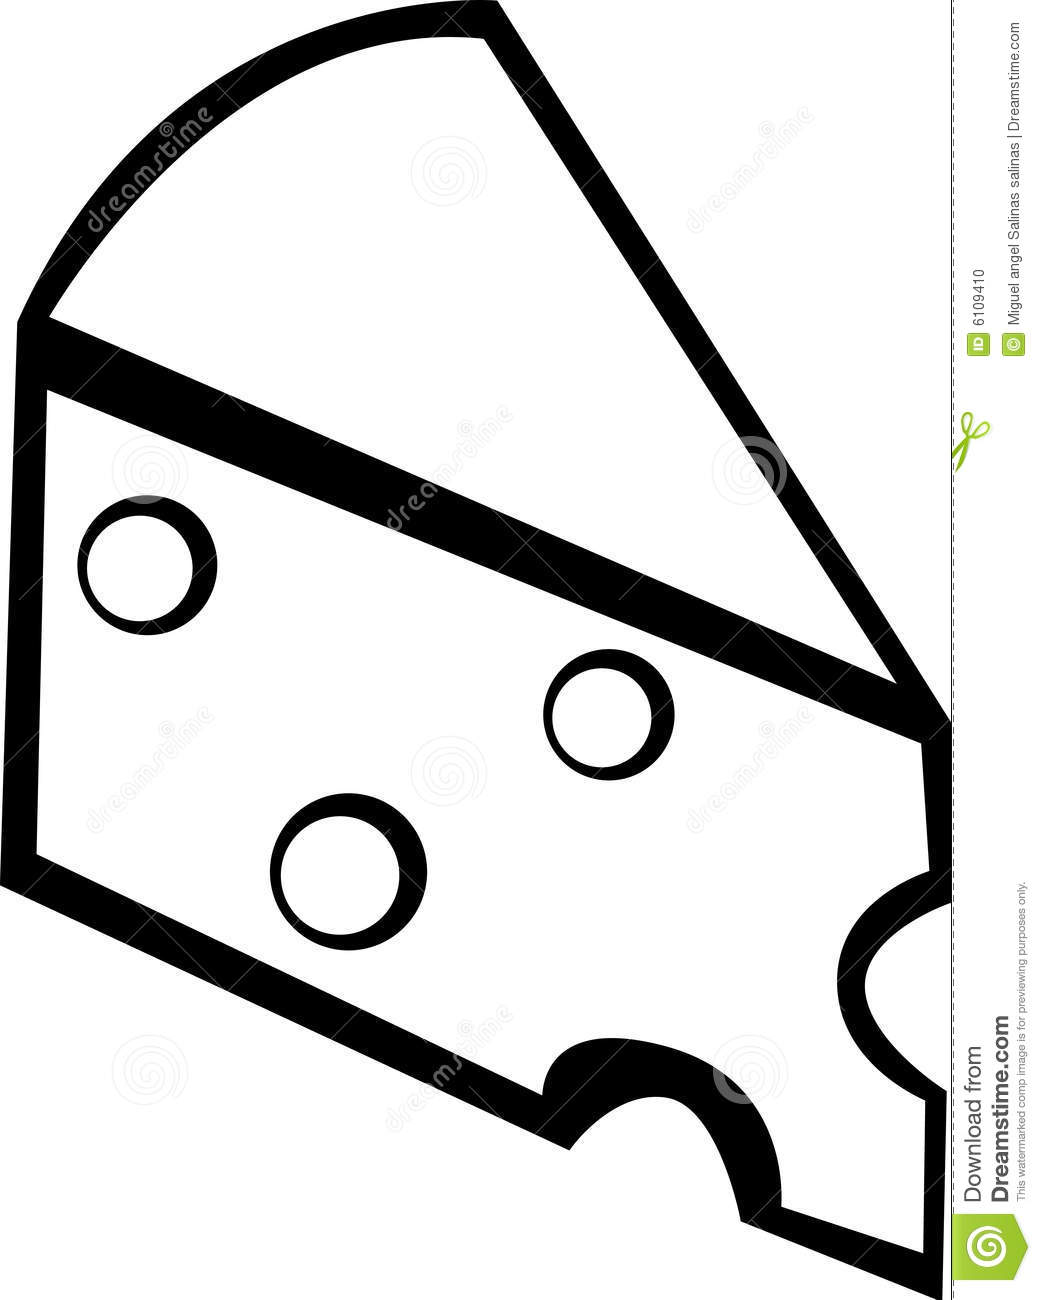 Swiss Or Gruyere Cheese Slice Vector Illustration Stock Photo.